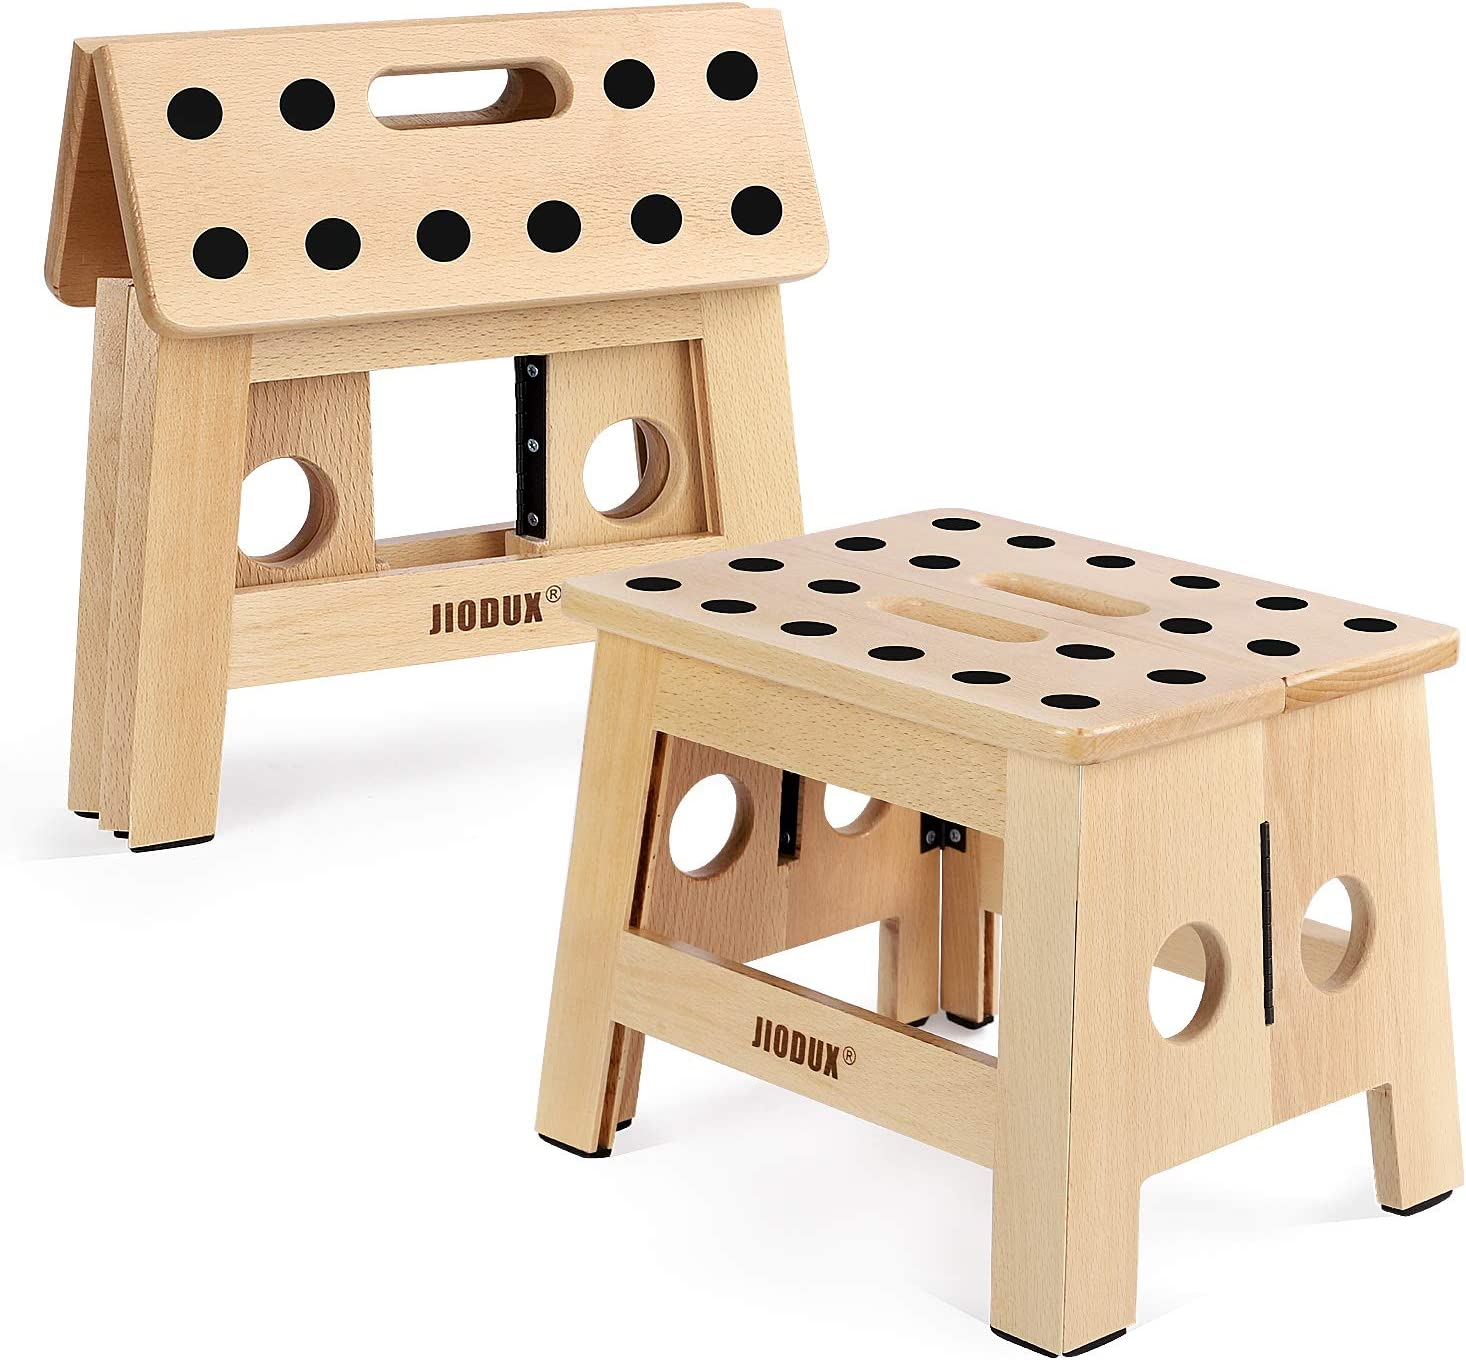 """Jiodux Wooden Step Stool 2rd Generation ,Step Stool for Kids Children & Adult-Folding Step Stool for Living Room,Bedroom,Laundry Room or Garden The Original Patent Pending -Wooden Stool - 8.8"""" Height"""